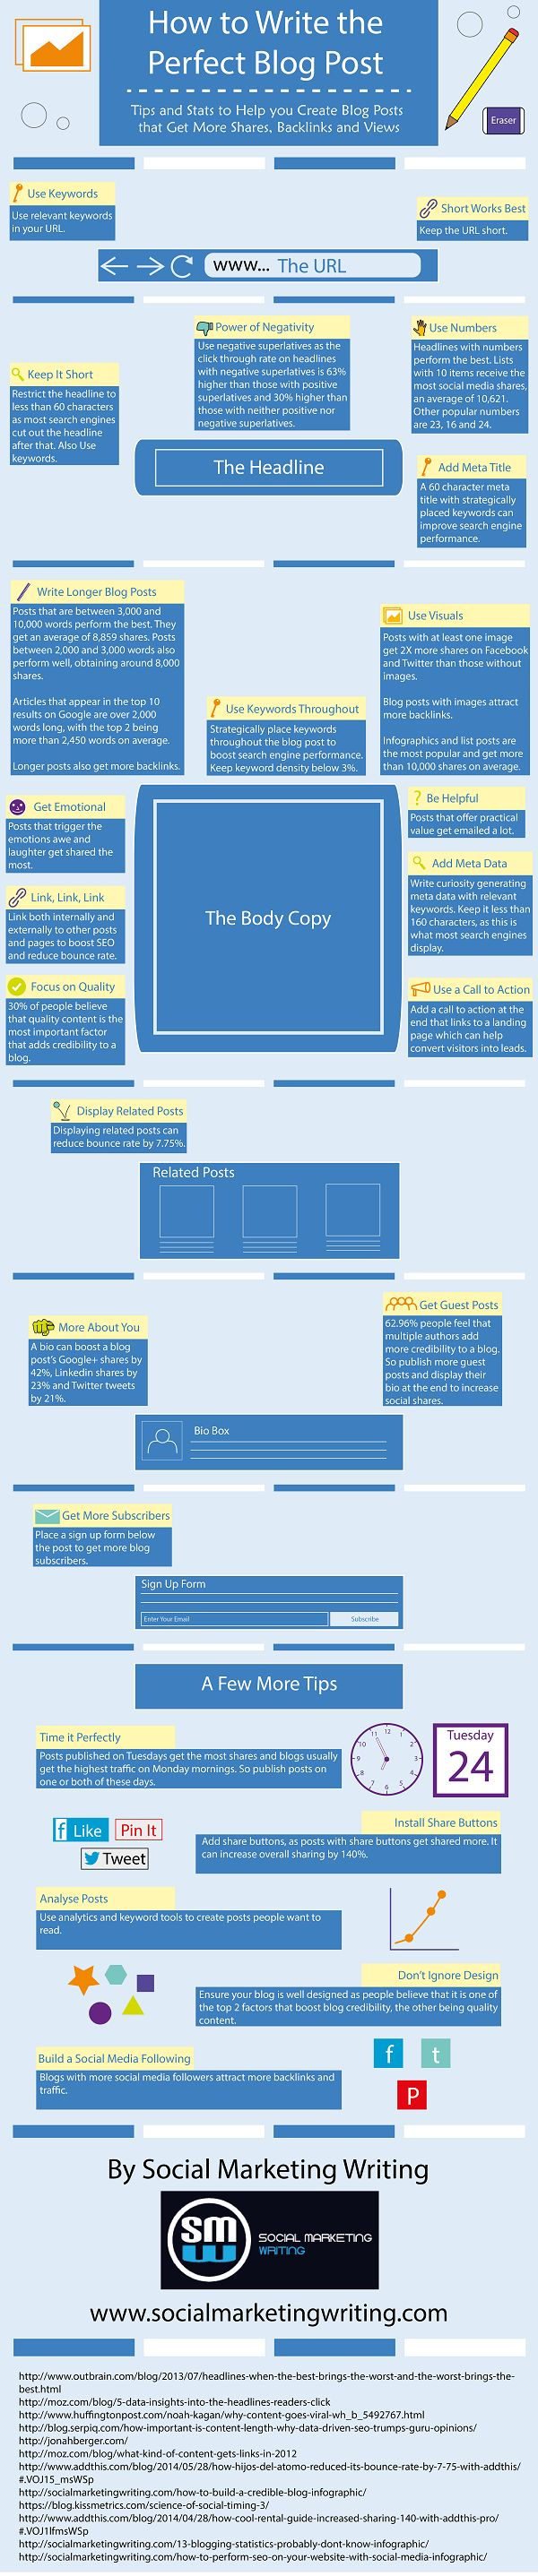 I came across this lovely Infographic and decided to share it. It really does have some useful information. I really like how it breaks the tips down by category (i.e. post headline, post body, etc.). However, I do think I disagree with the post length...